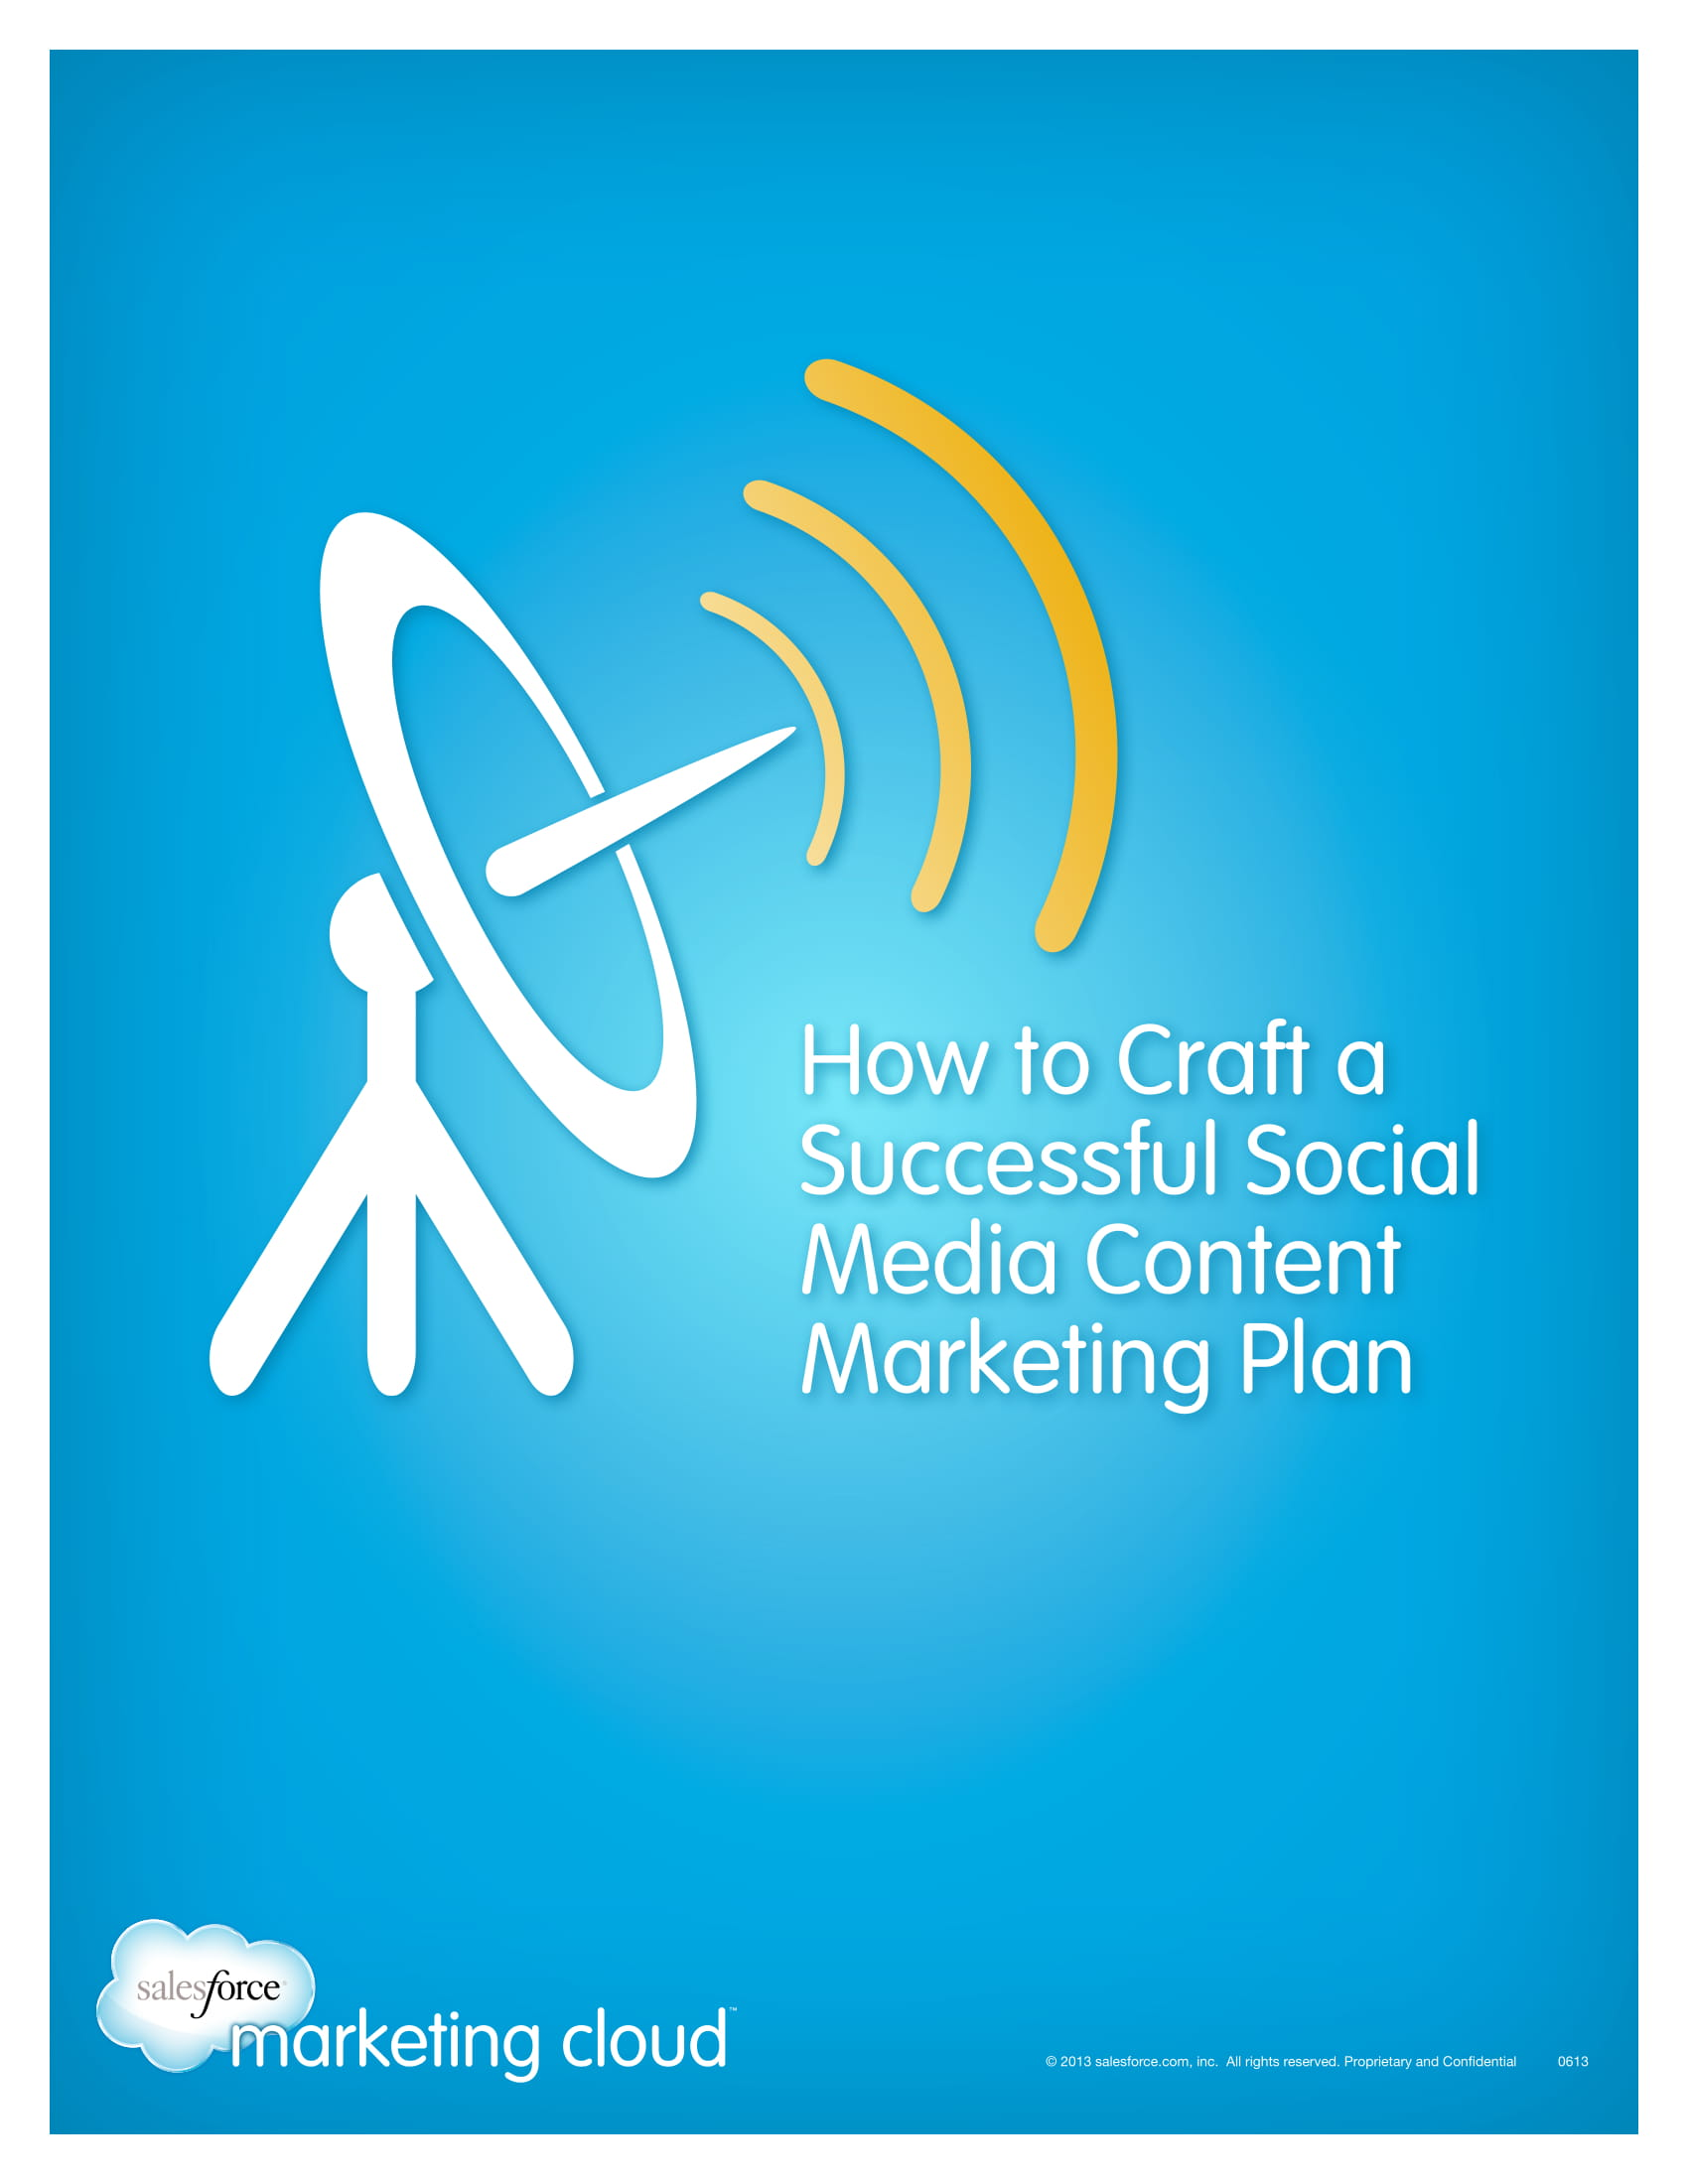 social media content marketing plan guide example